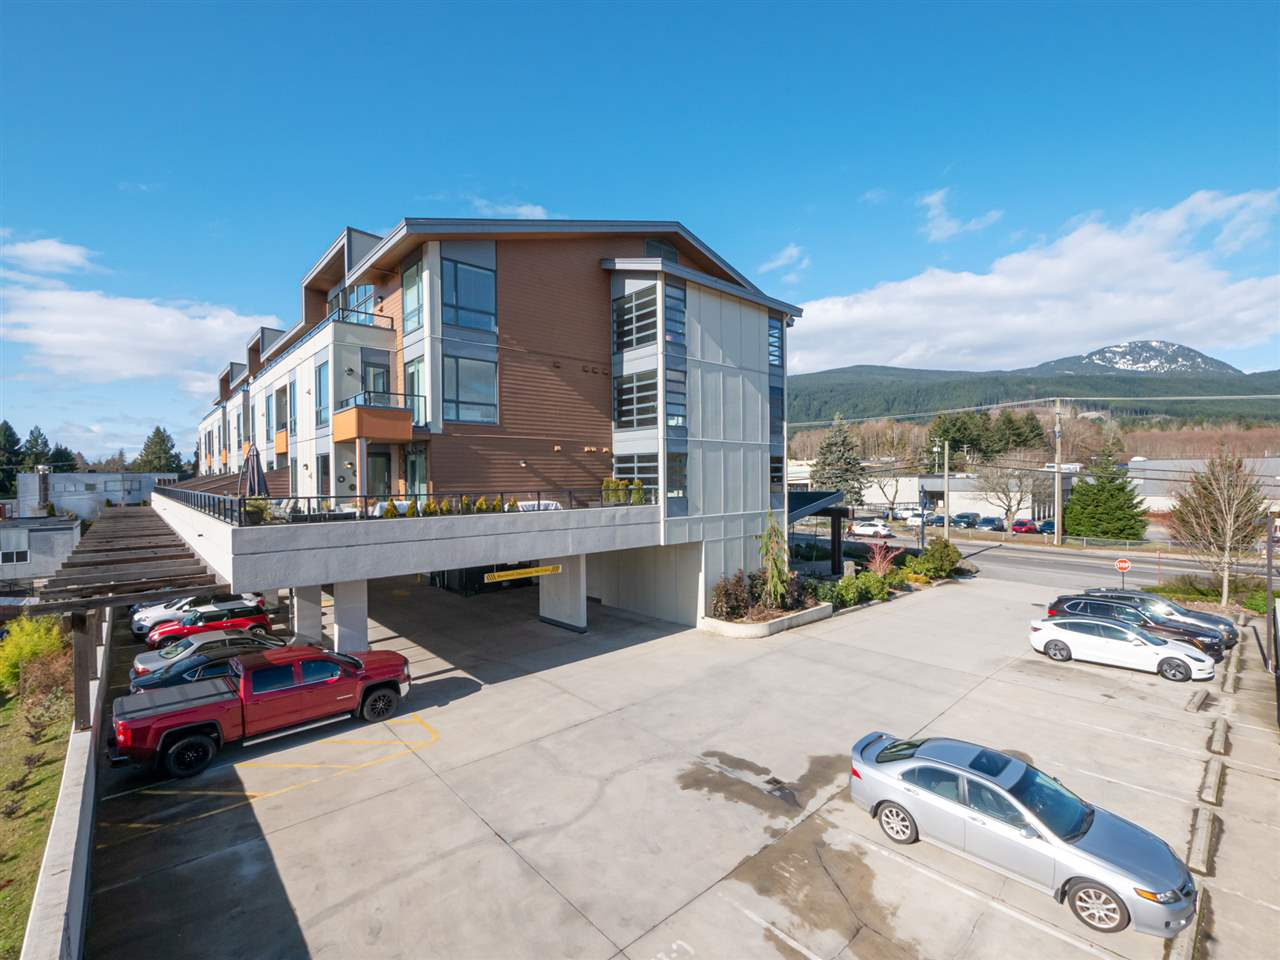 210 210 875 GIBSONS WAY - Gibsons & Area Apartment/Condo for sale, 2 Bedrooms (R2542139) - #24